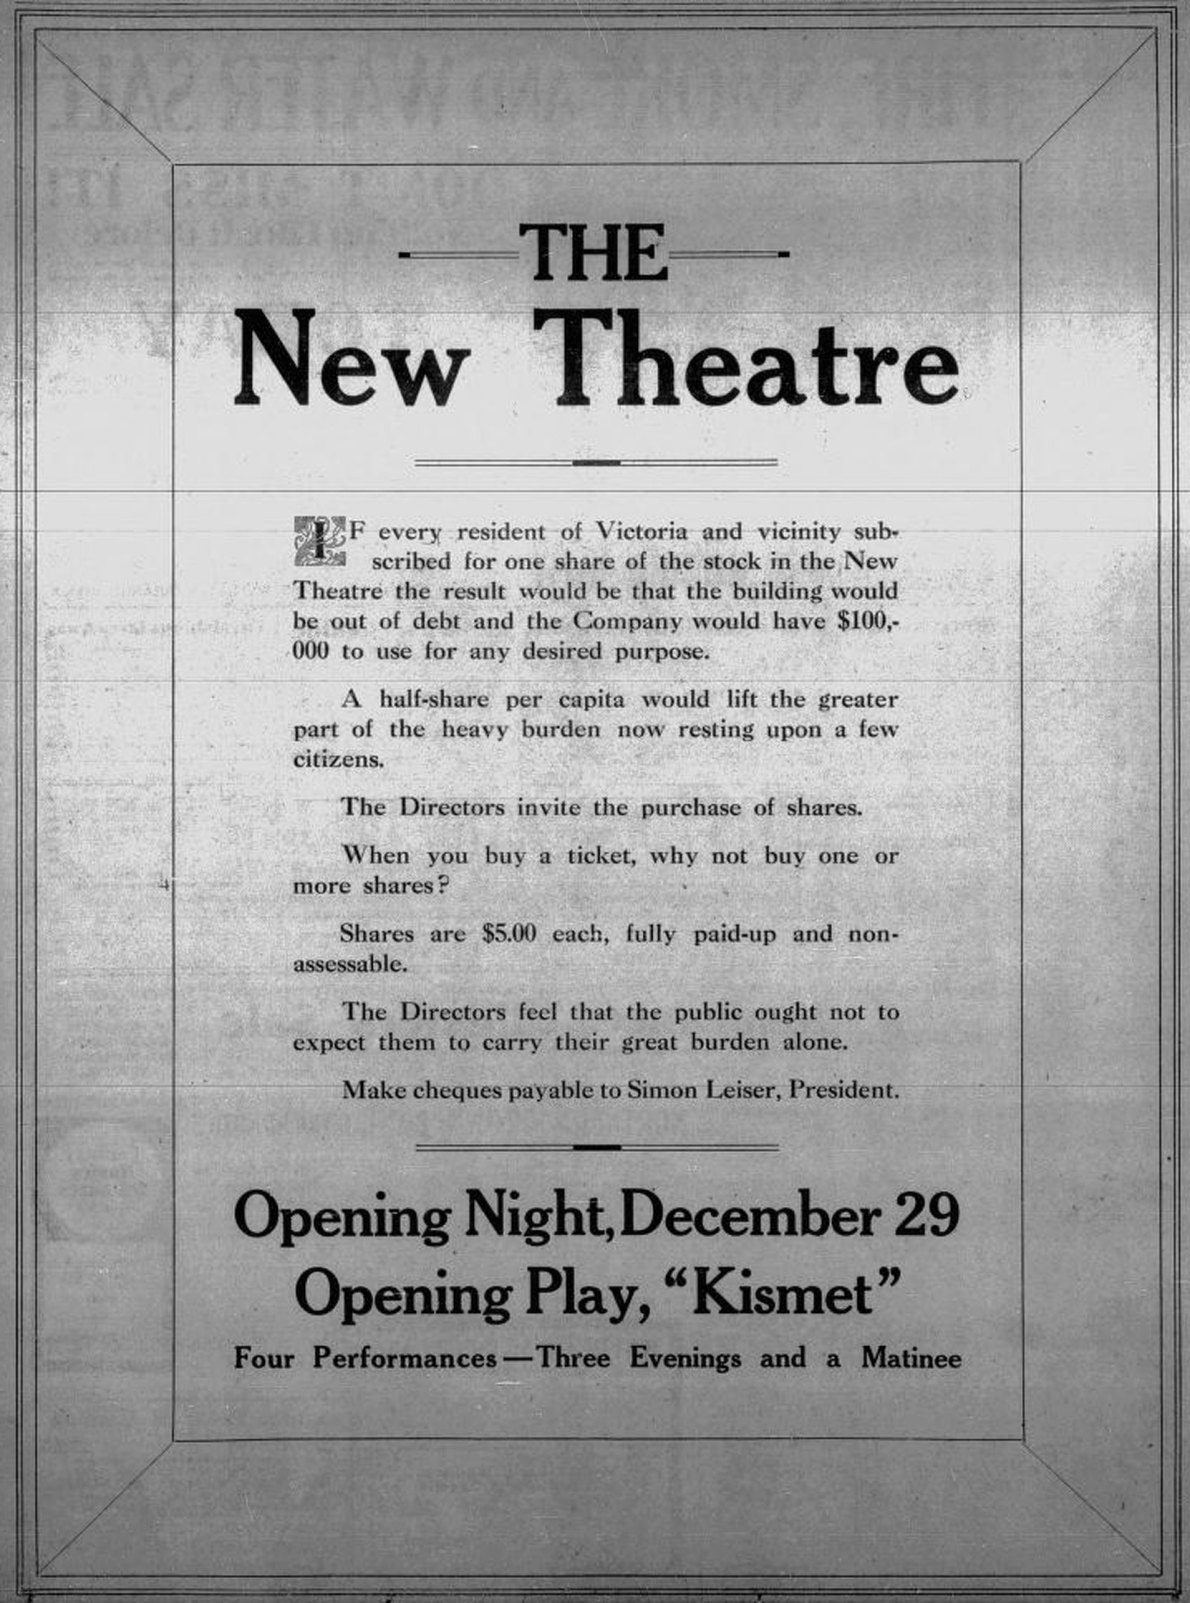 December 1913 advertisement for the opening night of the Royal Theatre, 805 Broughton Street. Note how the Directors of the company which built the theatre are asking theatre patrons to purchase shares in the theatre at 5.00 per share (Victoria Online Sightseeing Tours collection)